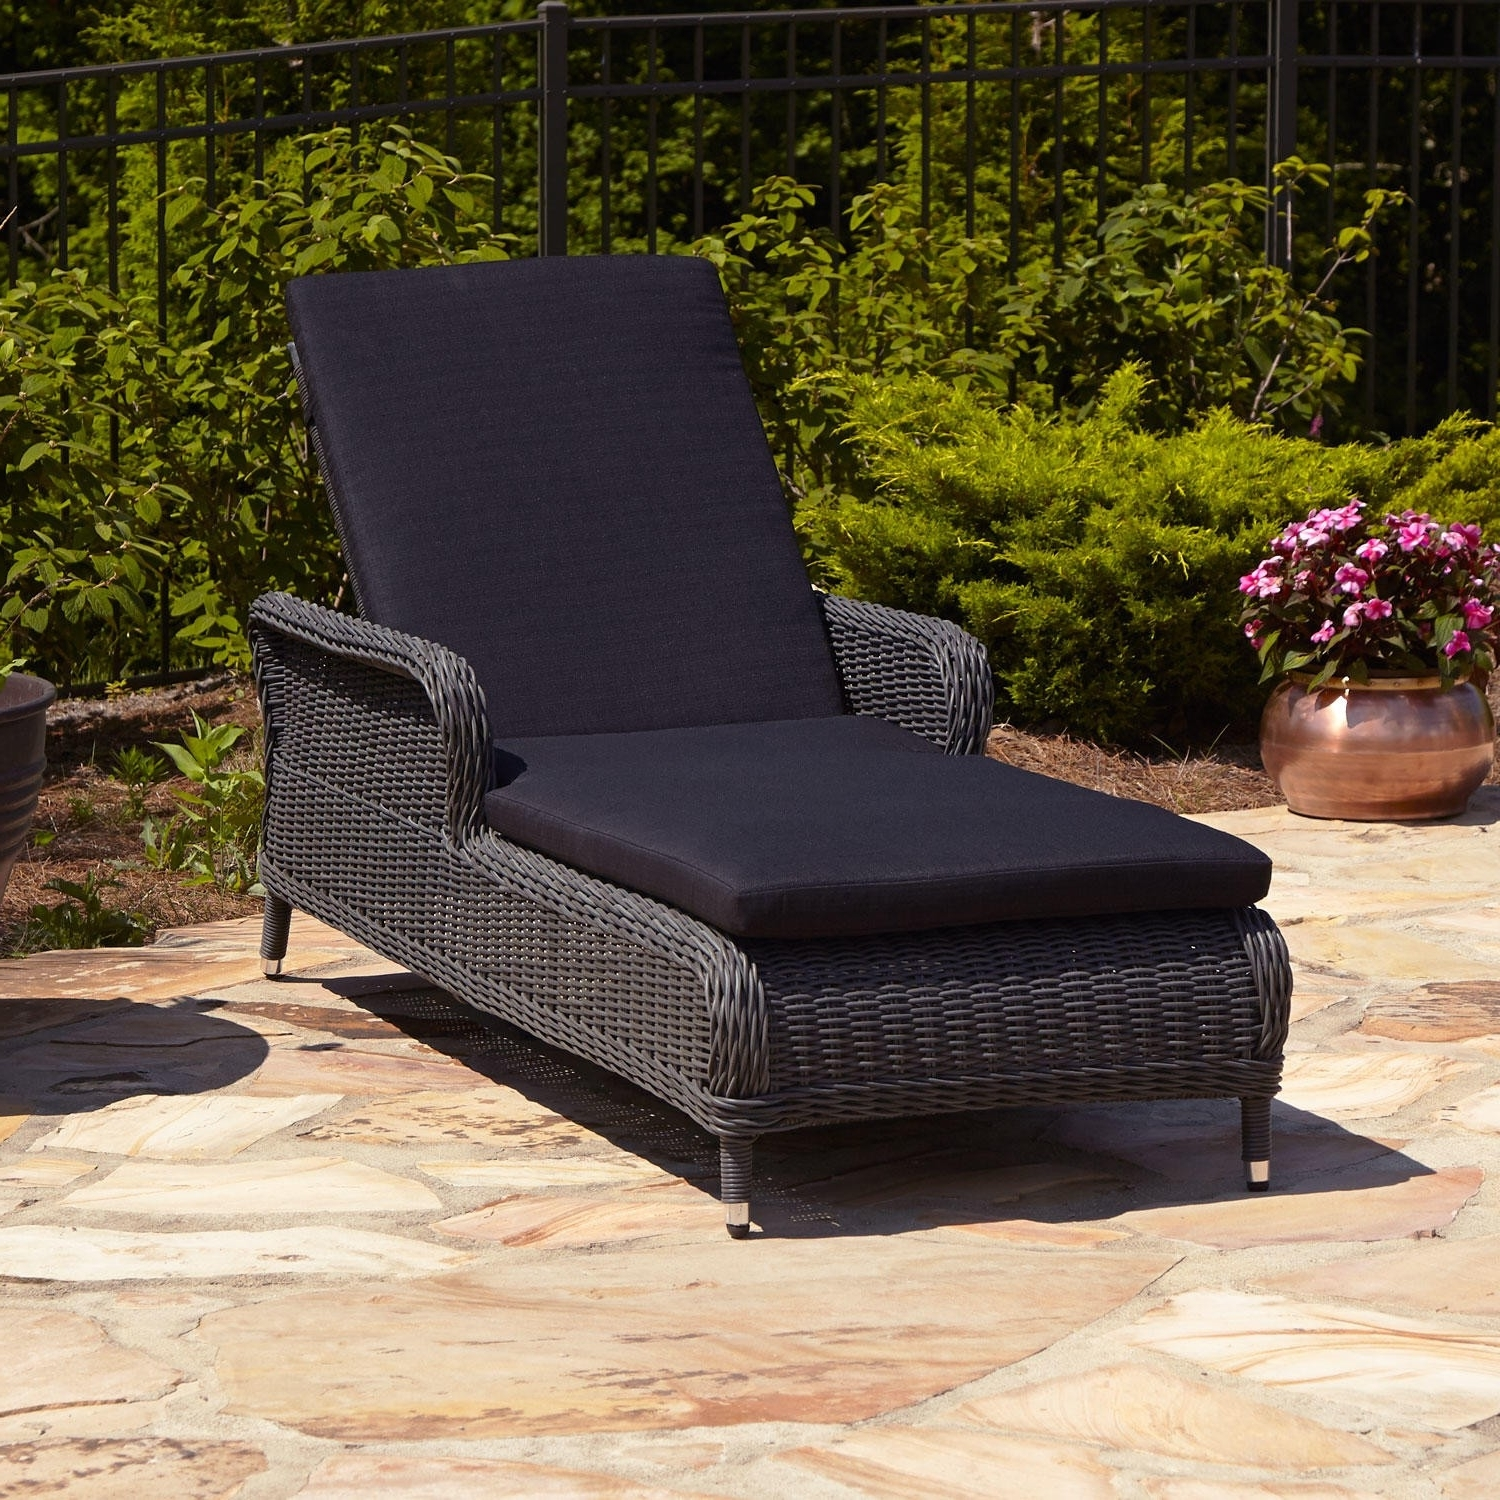 Popular Outdoor Cushions For Chaise Lounge Chairs Intended For Remarkable Wicker Chaise Lounge Chair Gray Patio Furniture All (View 6 of 15)